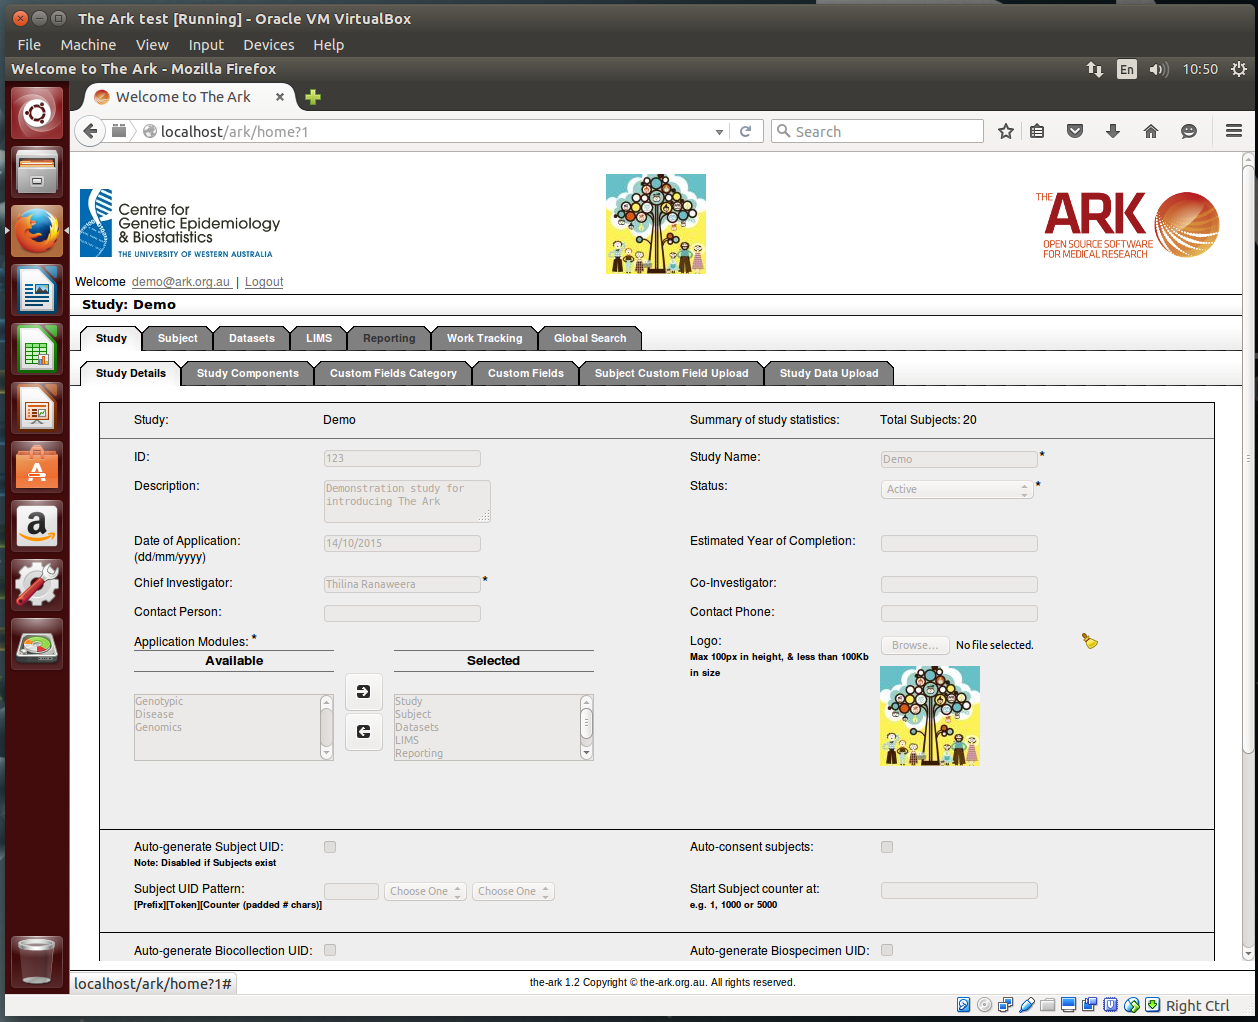 The Ark VirtualBox